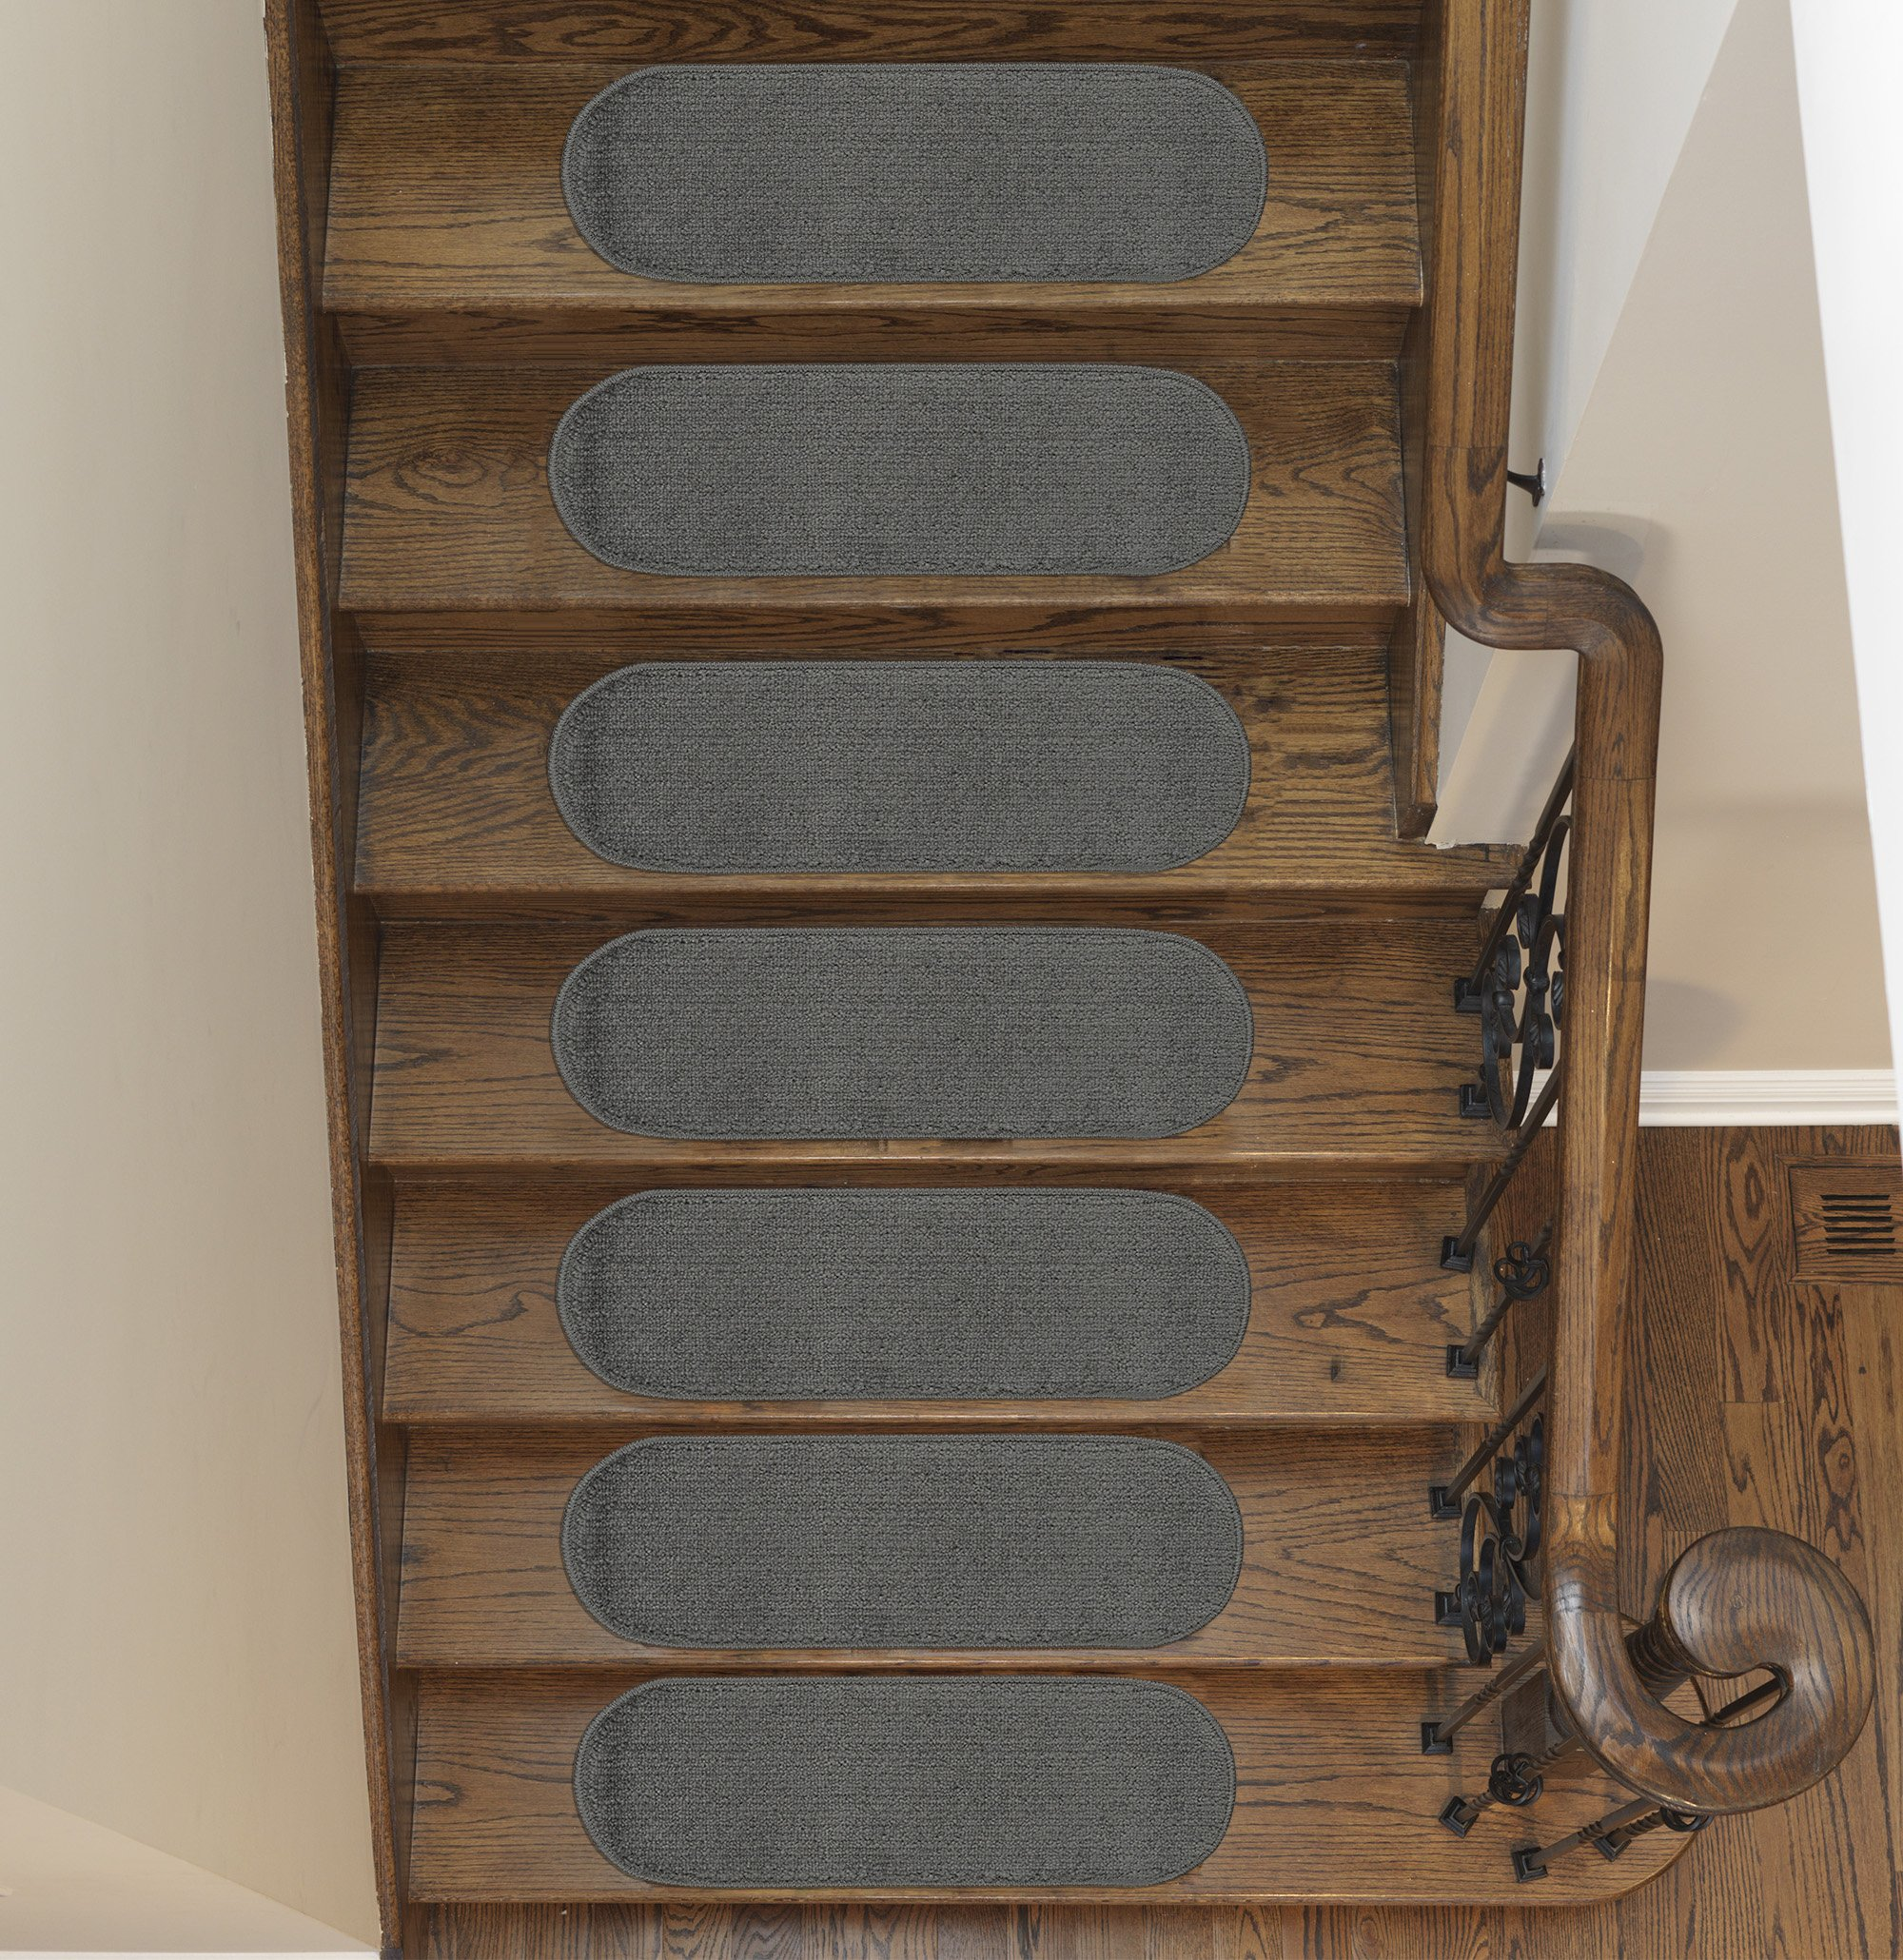 Ottomanson Softy Collection Stair Tread, 9'' X 26'' Oval, Dark Grey, 7 Pack